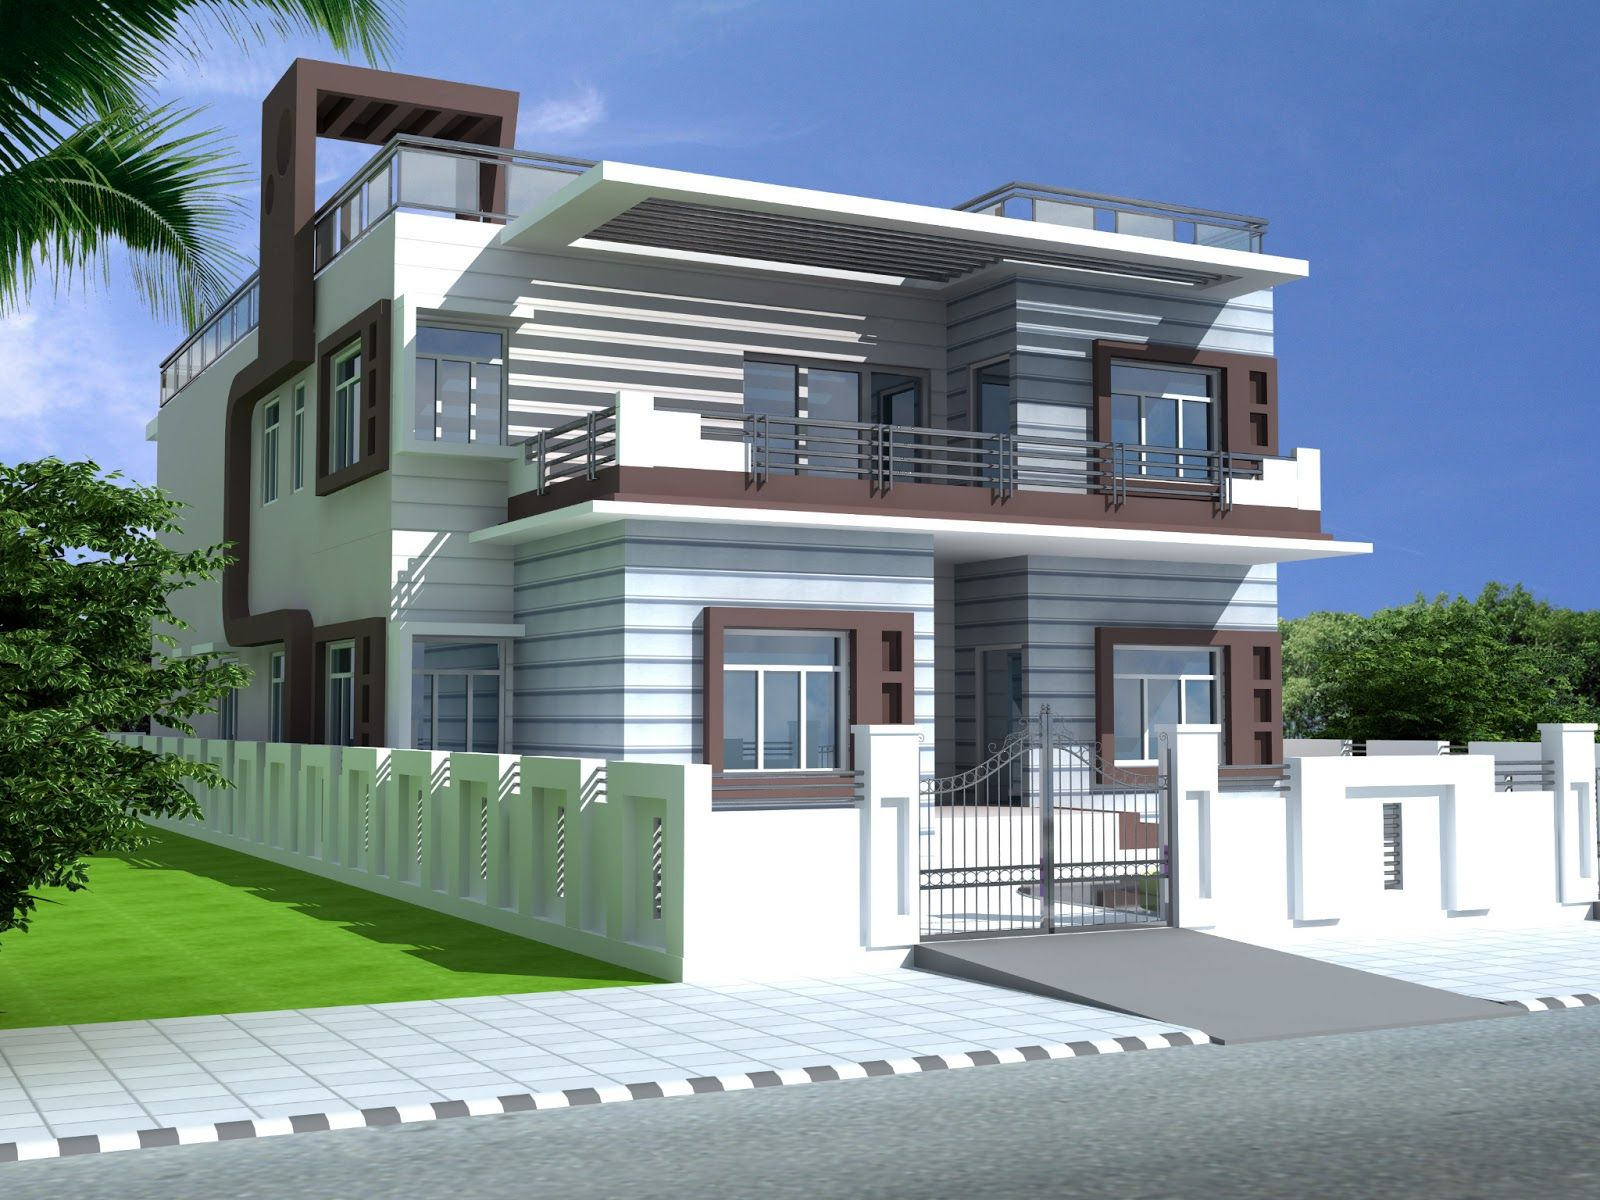 6 bedrooms duplex house design in 390m2 13m x 30m for Building plans for duplex homes